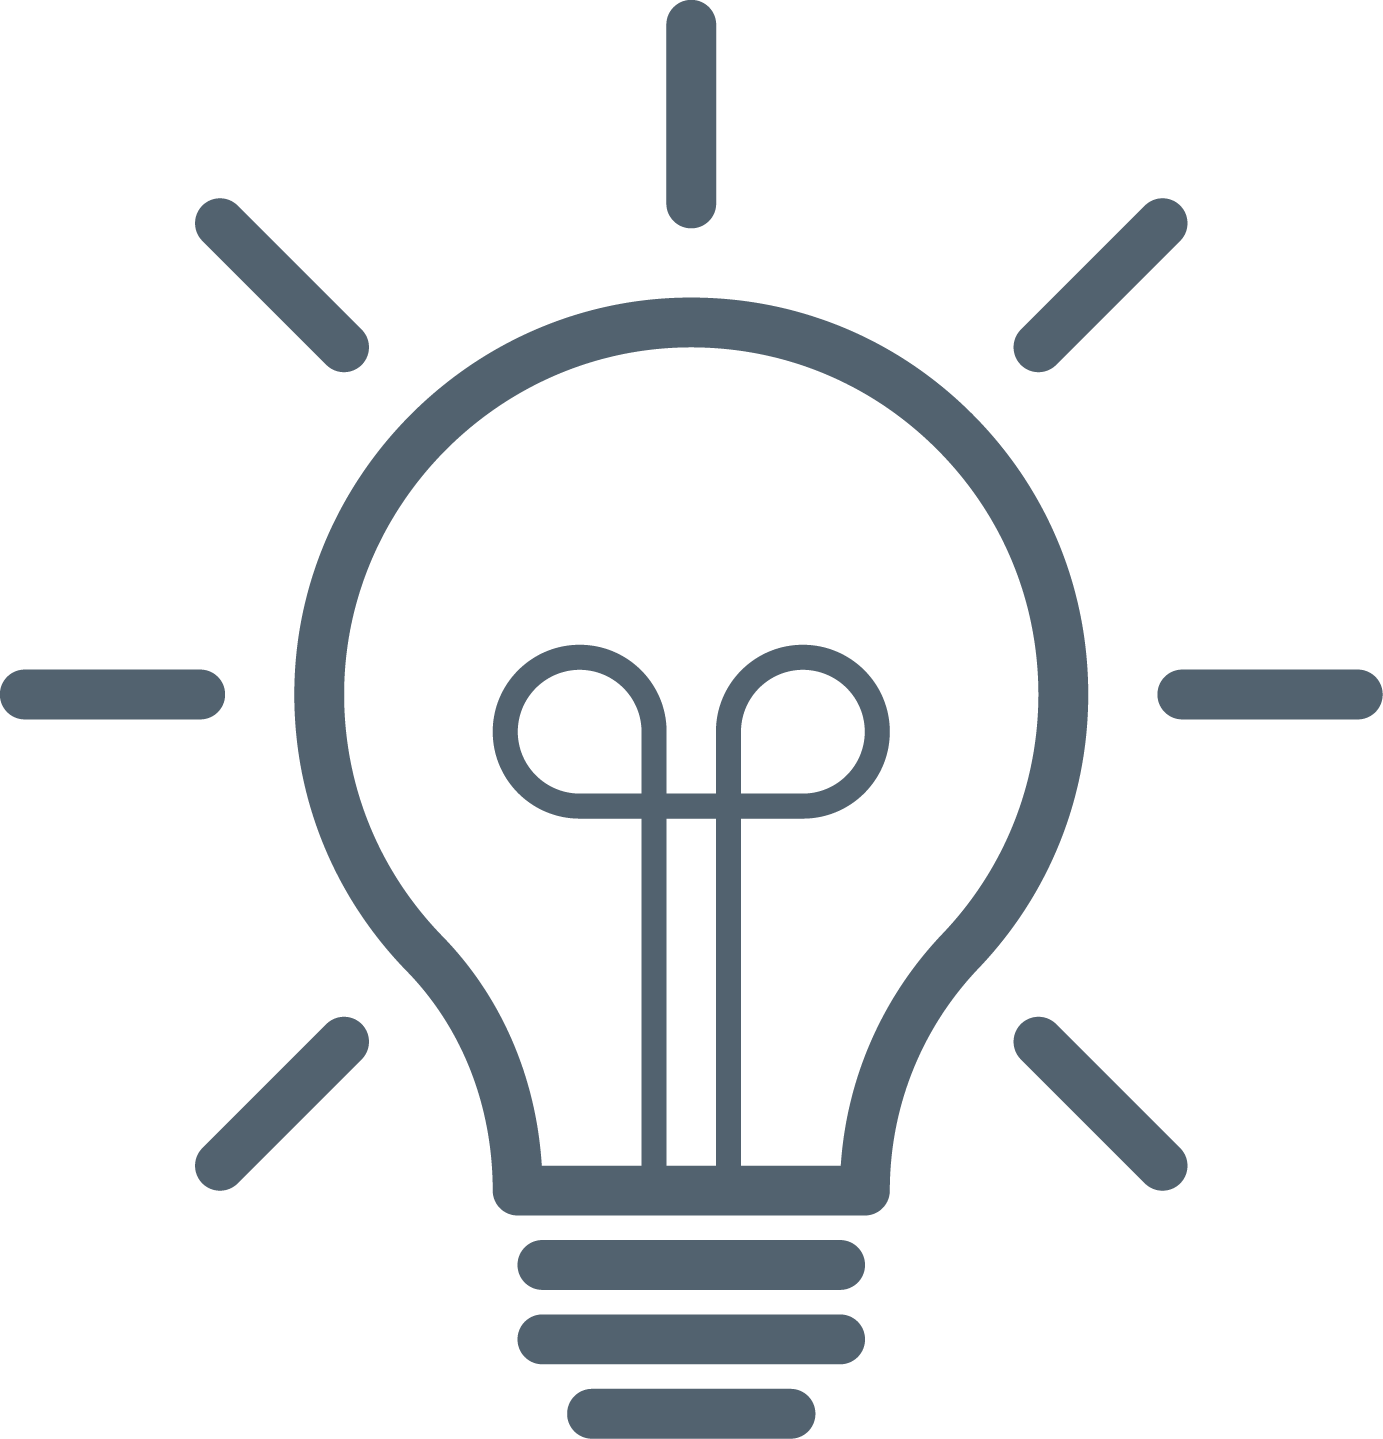 Lighbulb icon, grey